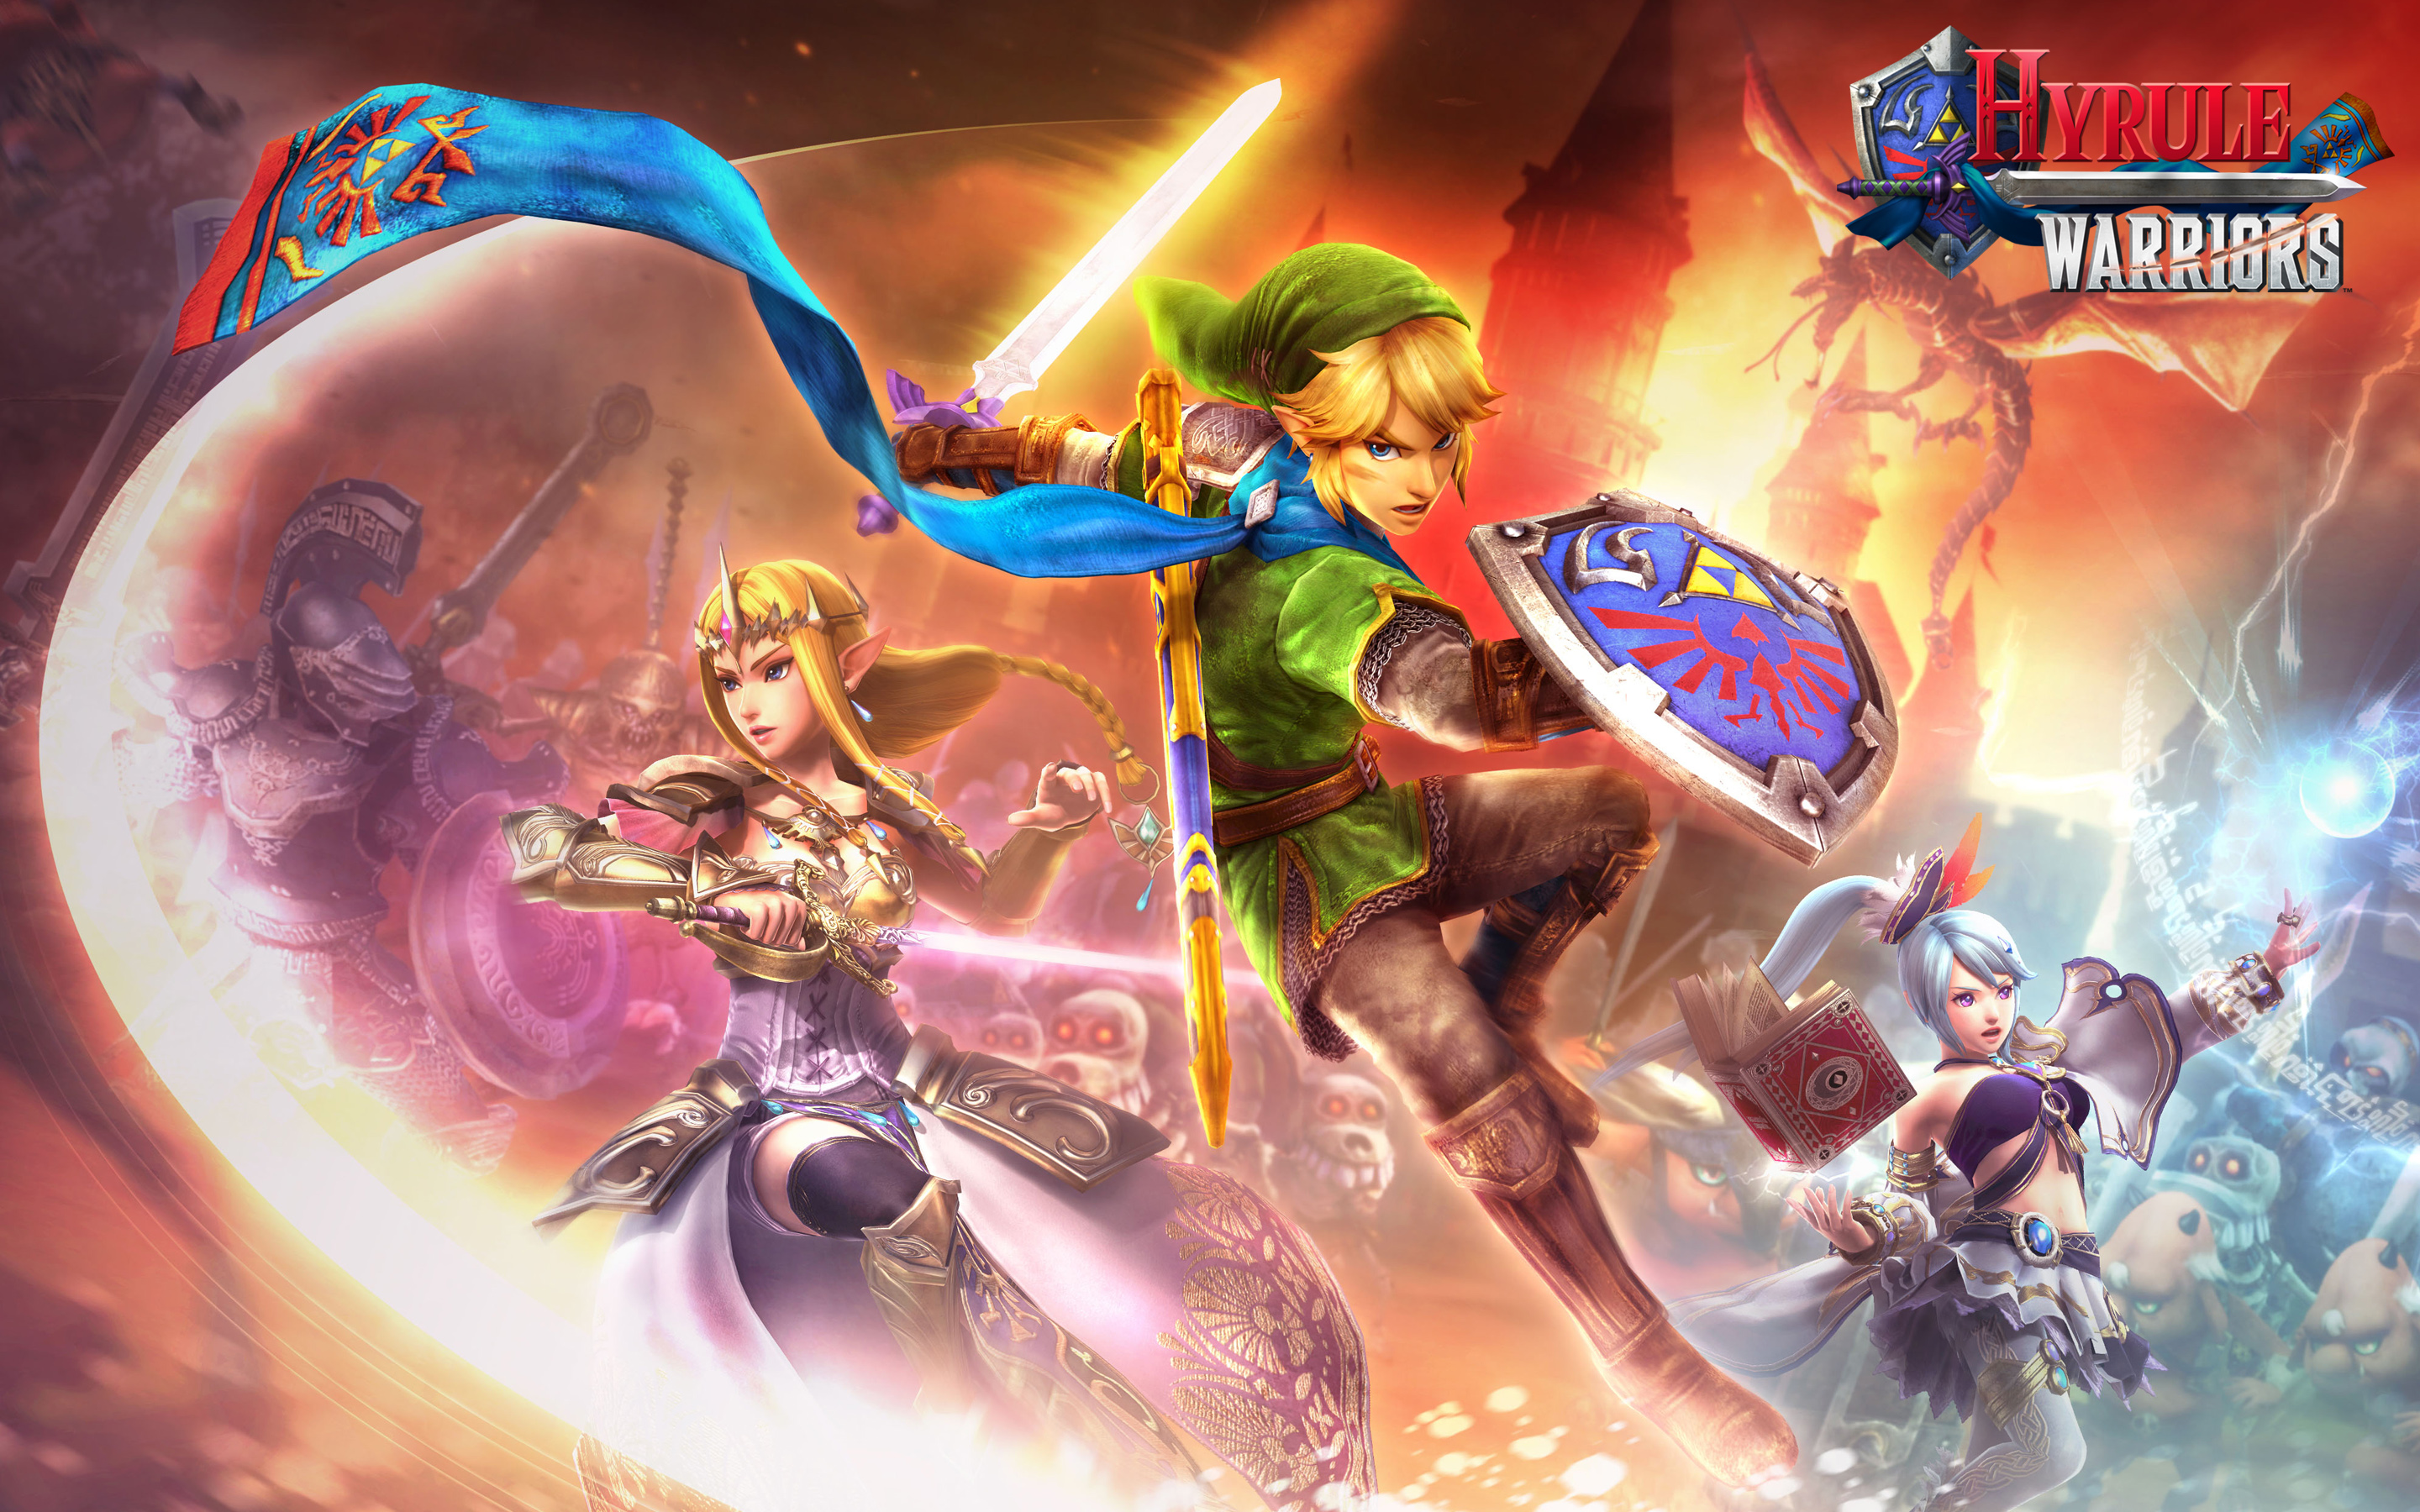 Nintendo Confirms Hyrule Warriors Will Offer Amiibo Support With Link Figure My Nintendo News